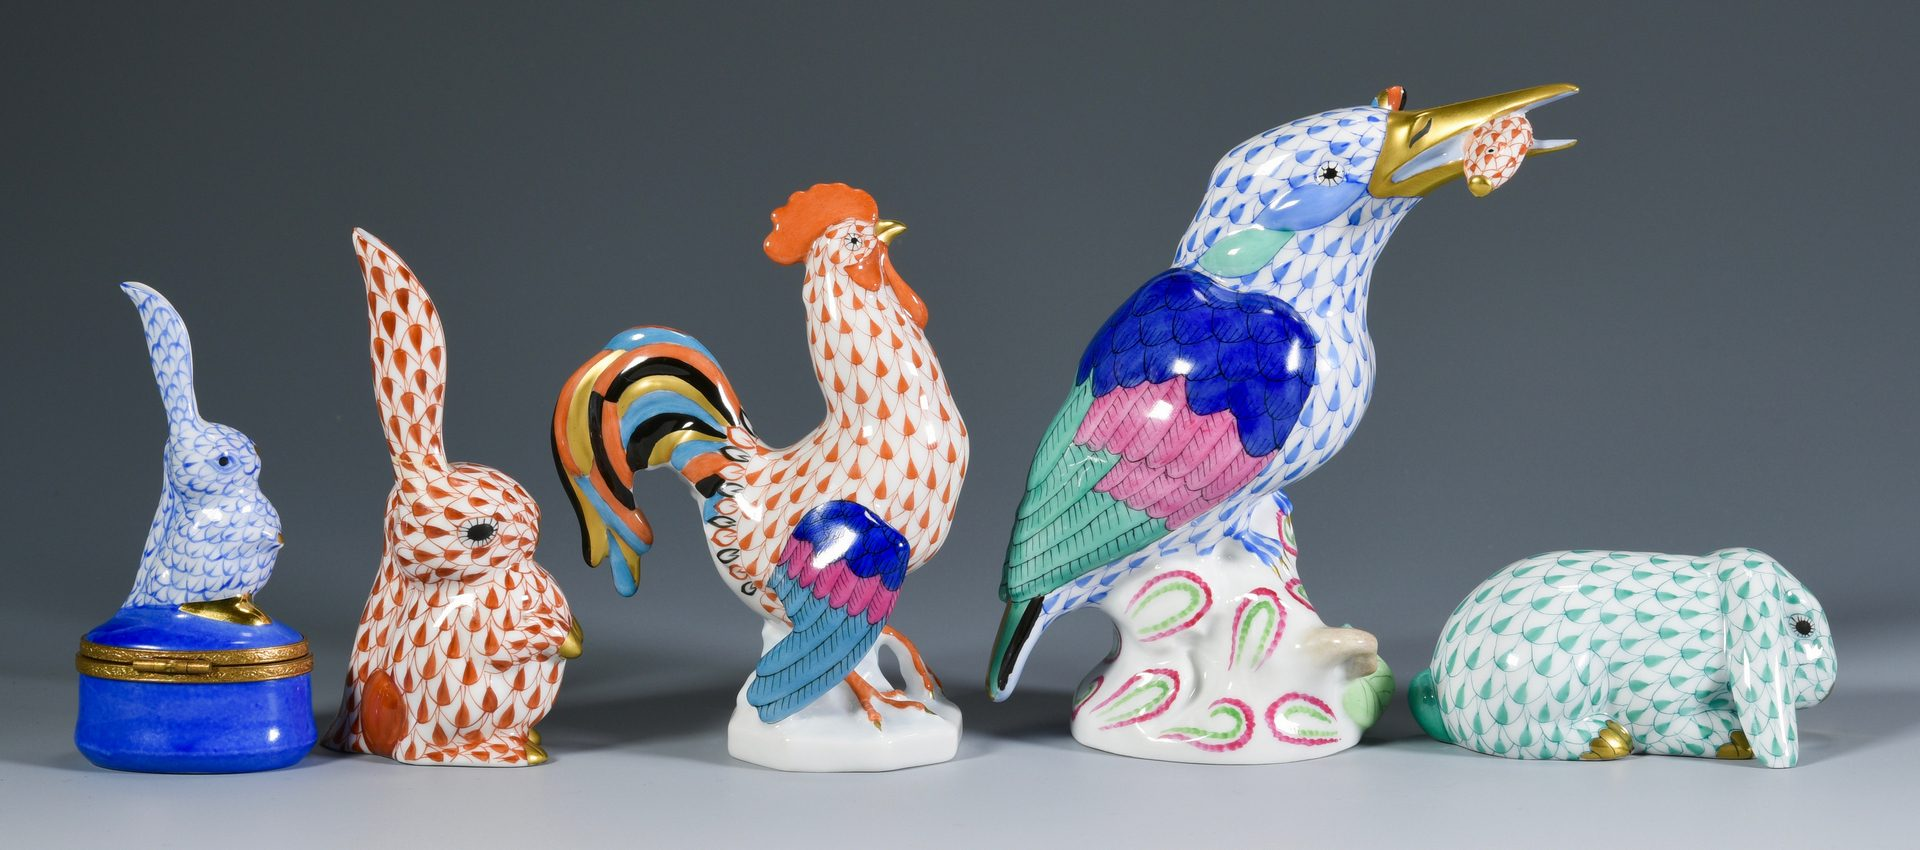 Lot 39: Grouping of Herend Animal Figures & More, 10 total